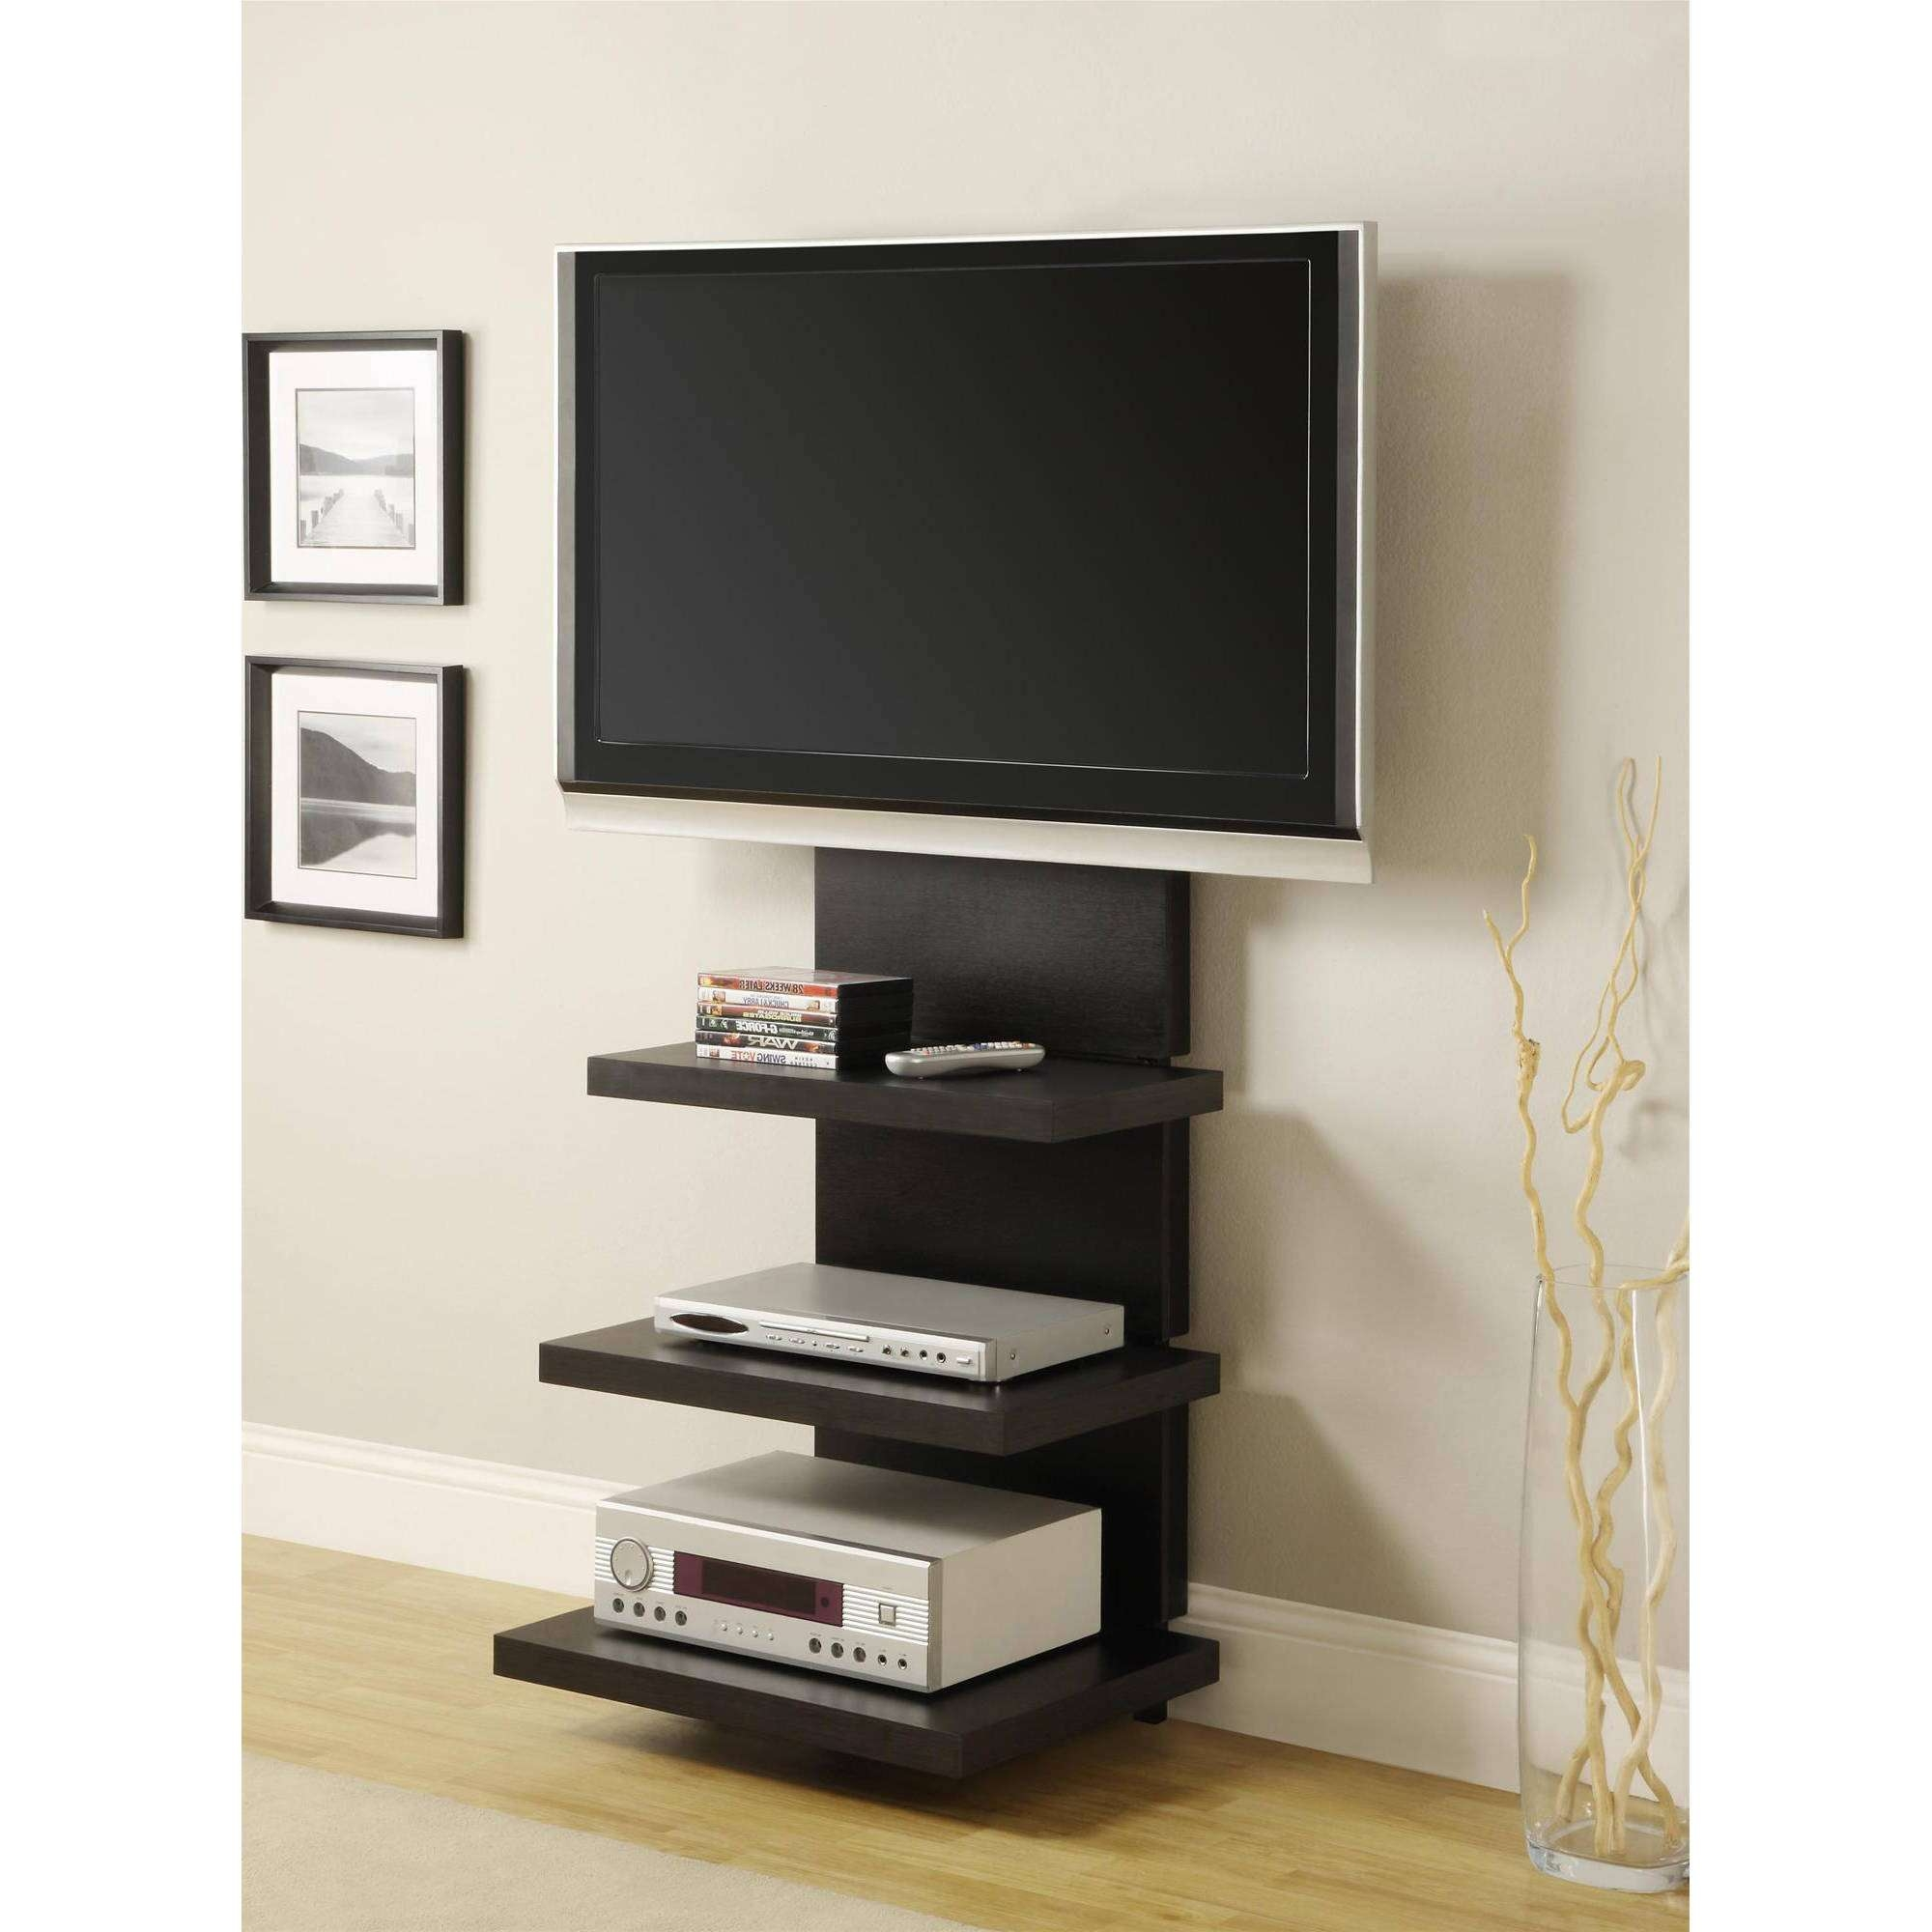 Ameriwood Home Elevation Altramount Tv Stand For Tvs Up To 60 For Tv Cabinets With Storage (View 14 of 20)